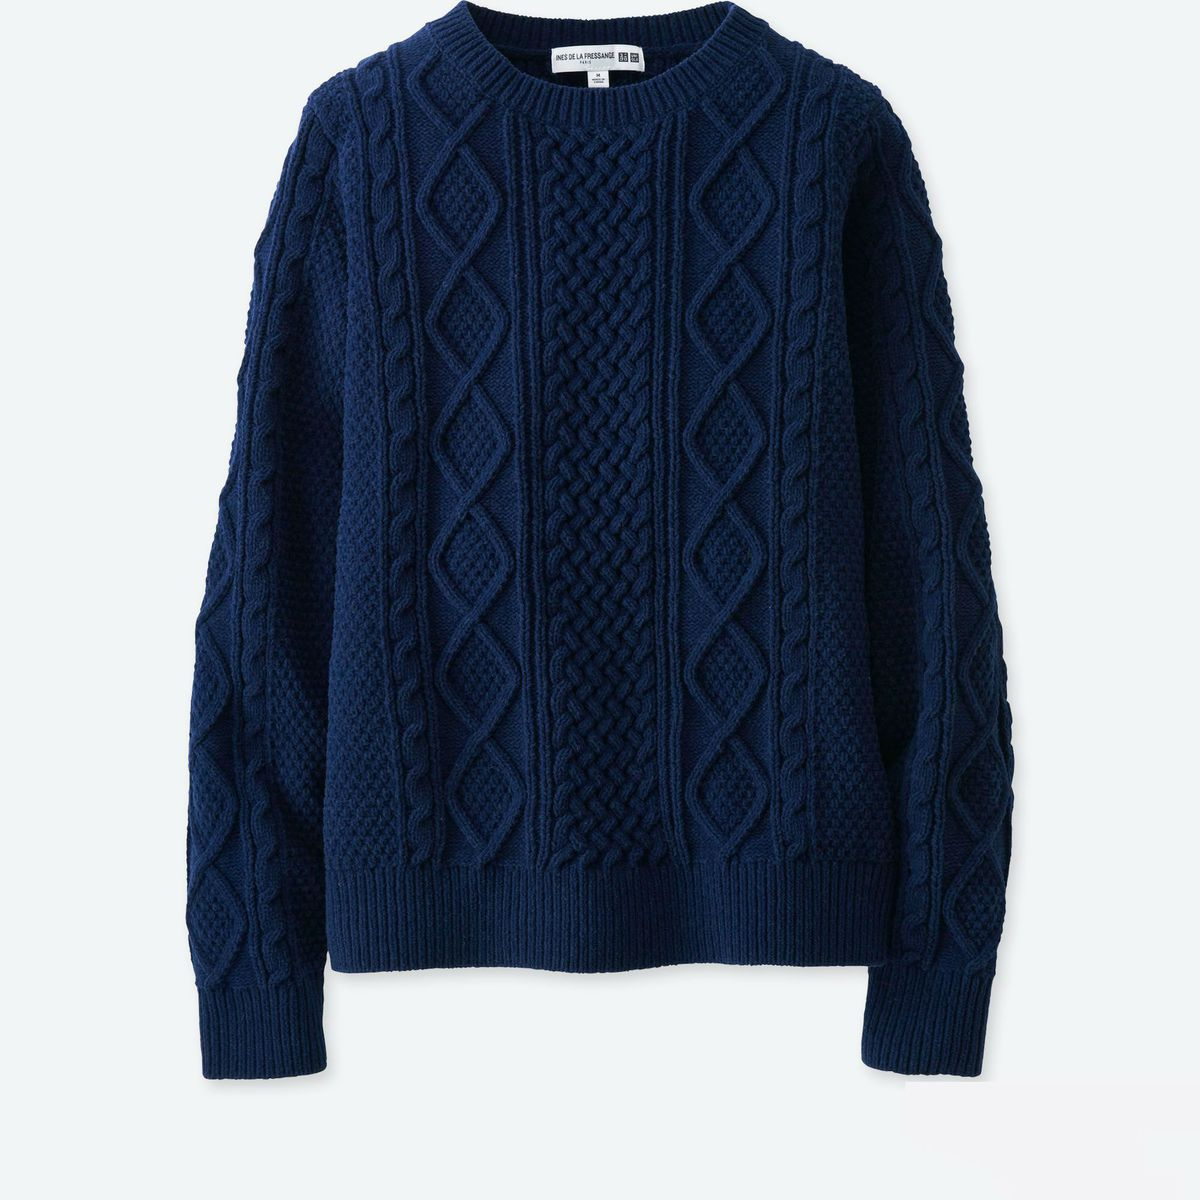 A navy cable knit sweater